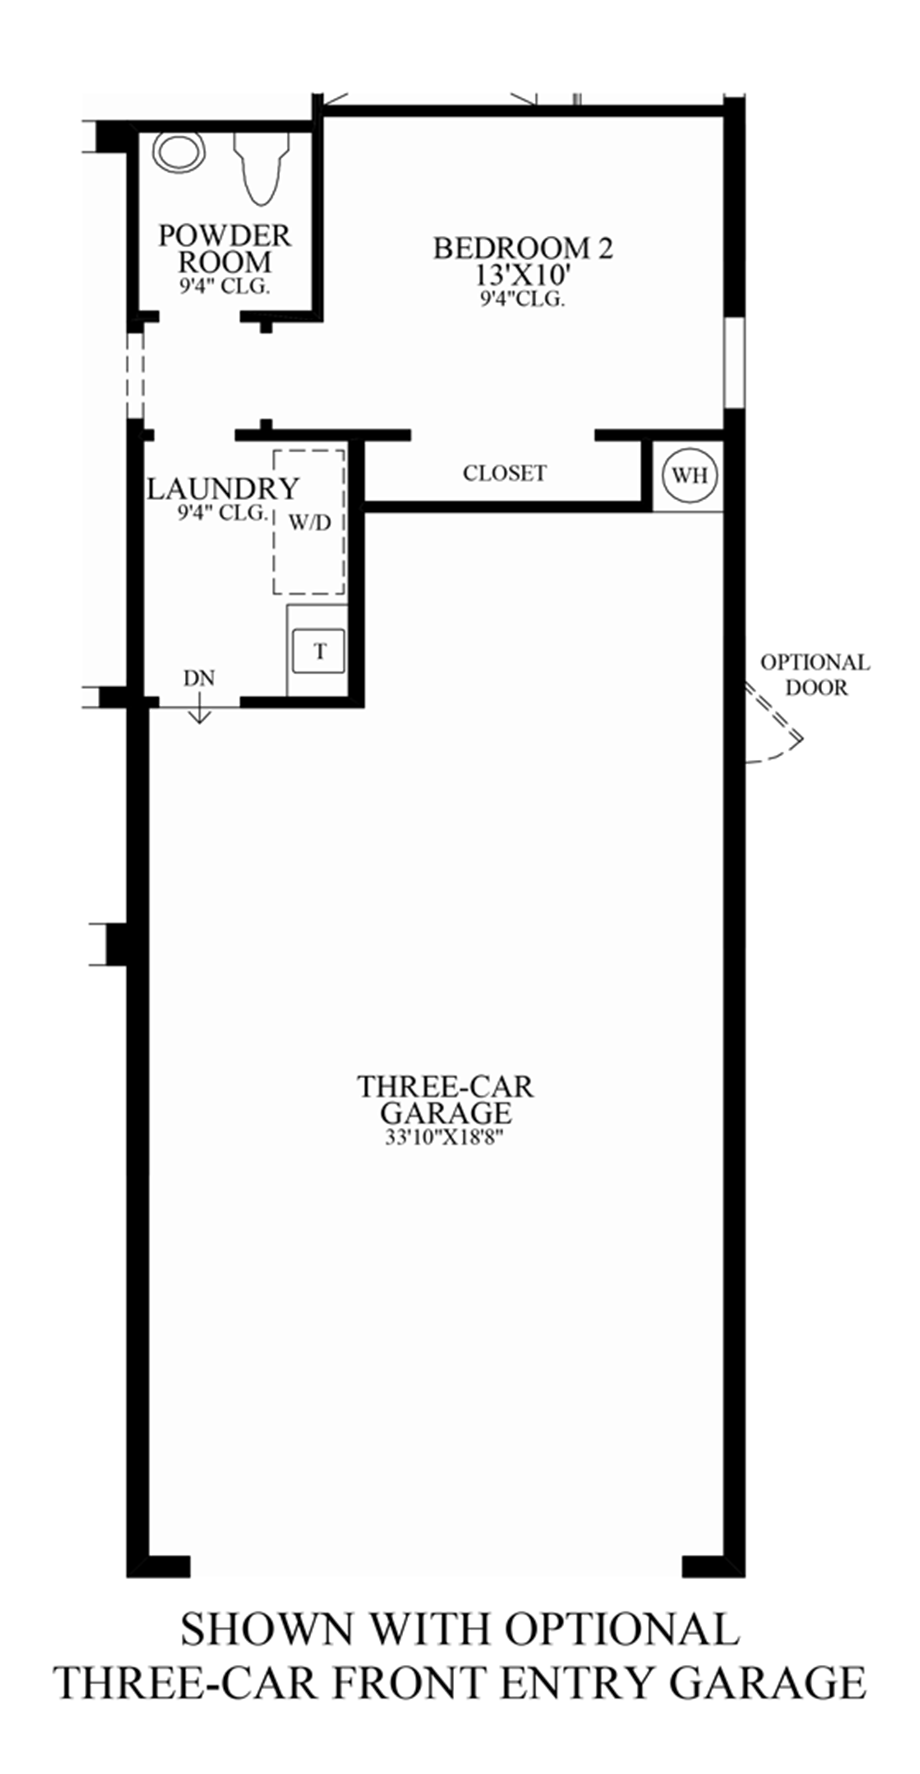 Optional 3-Car Front-Entry Garage Floor Plan